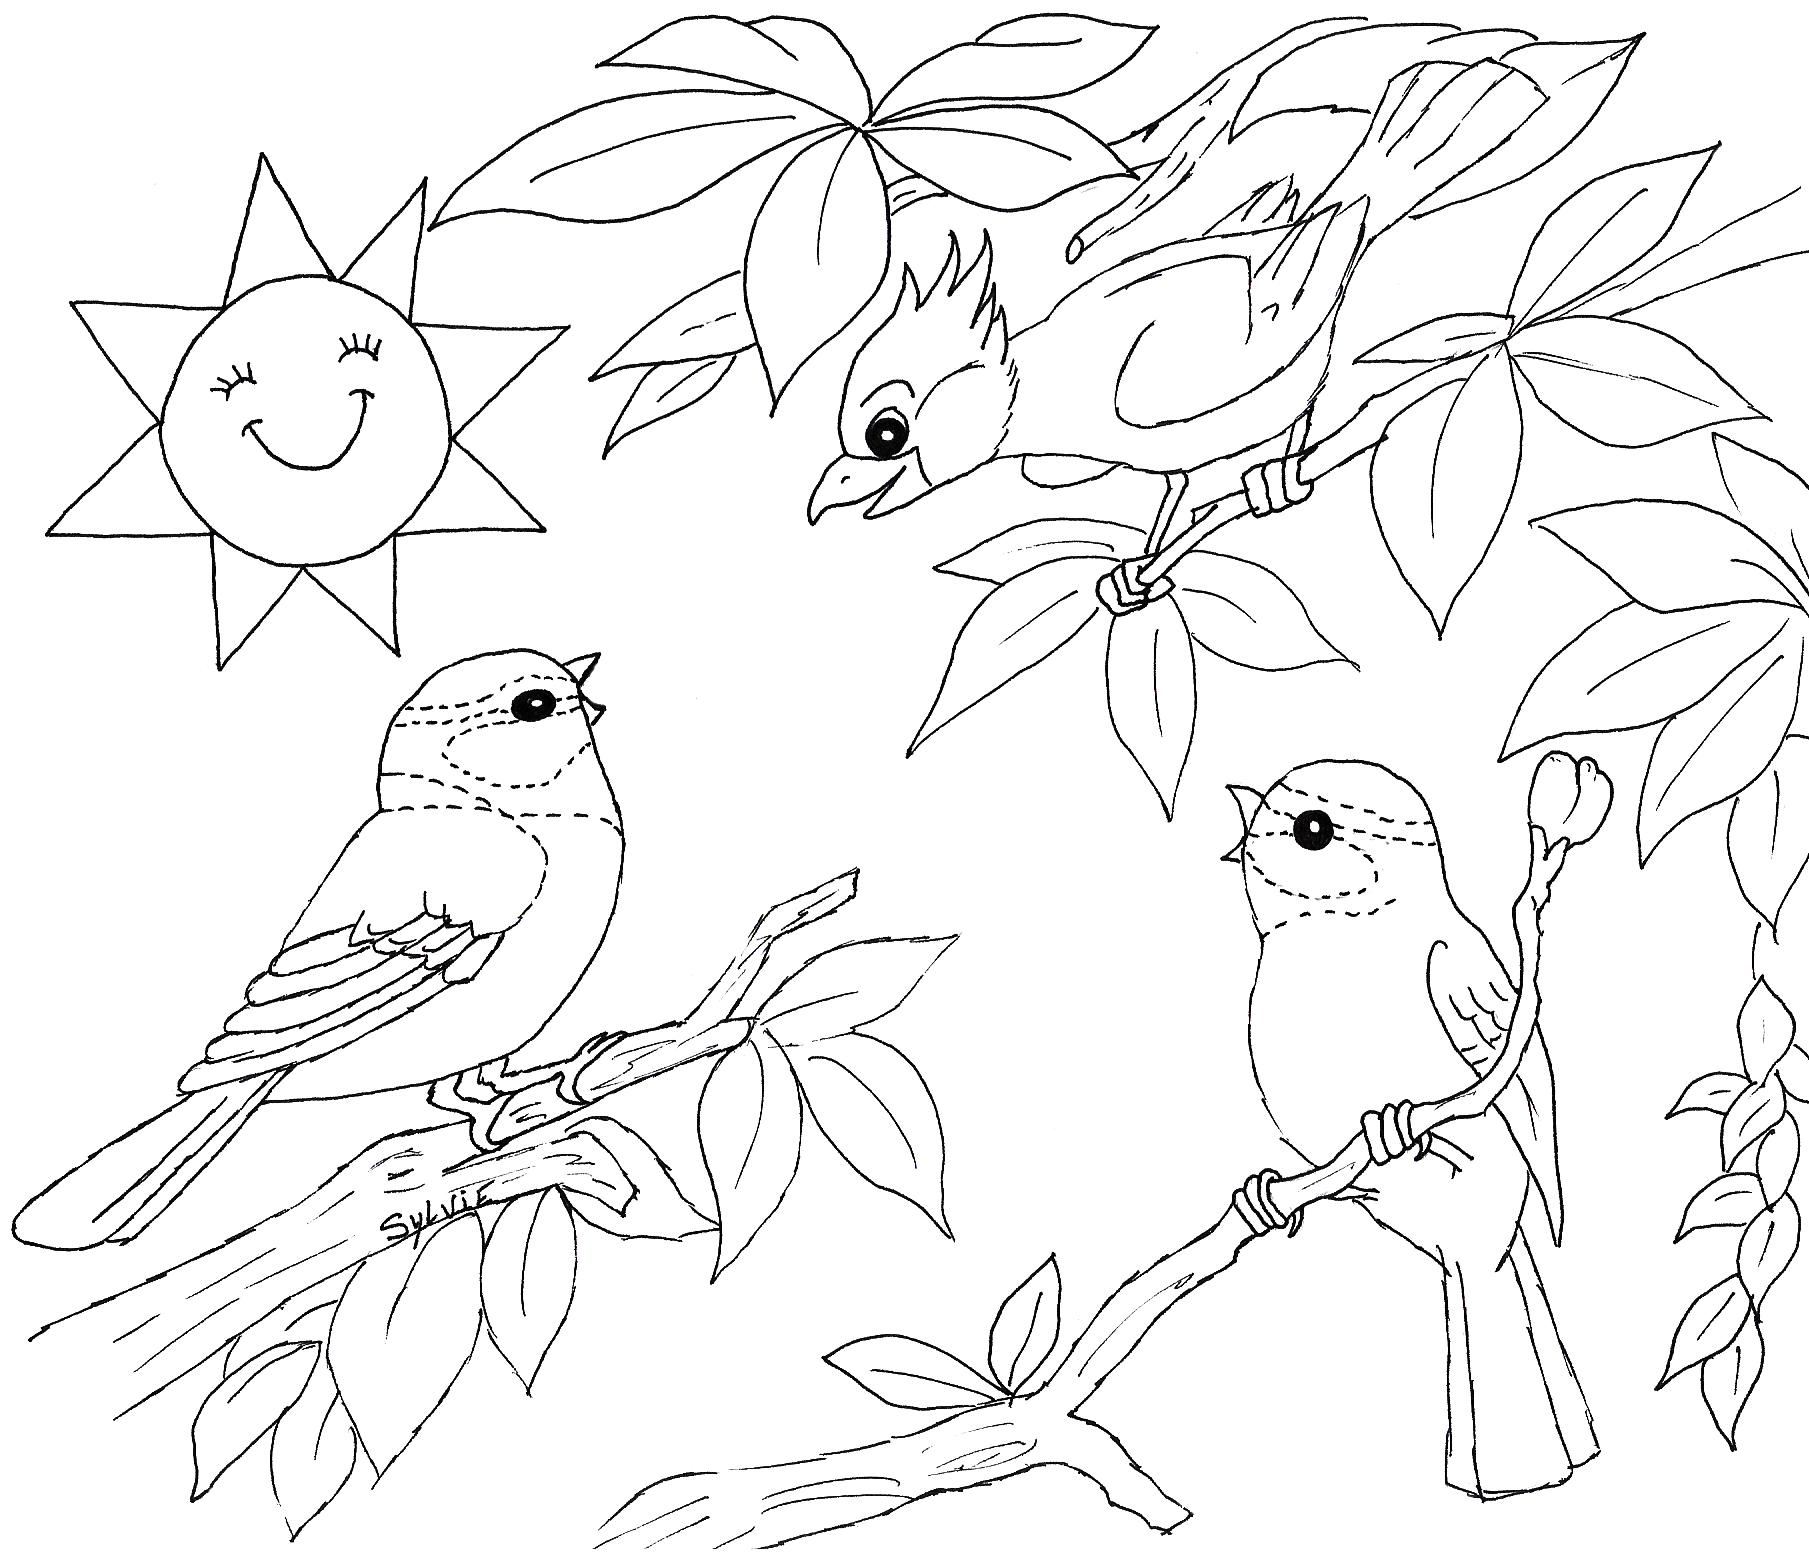 coloring pages for kids birds birds to color for children birds kids coloring pages coloring kids birds for pages